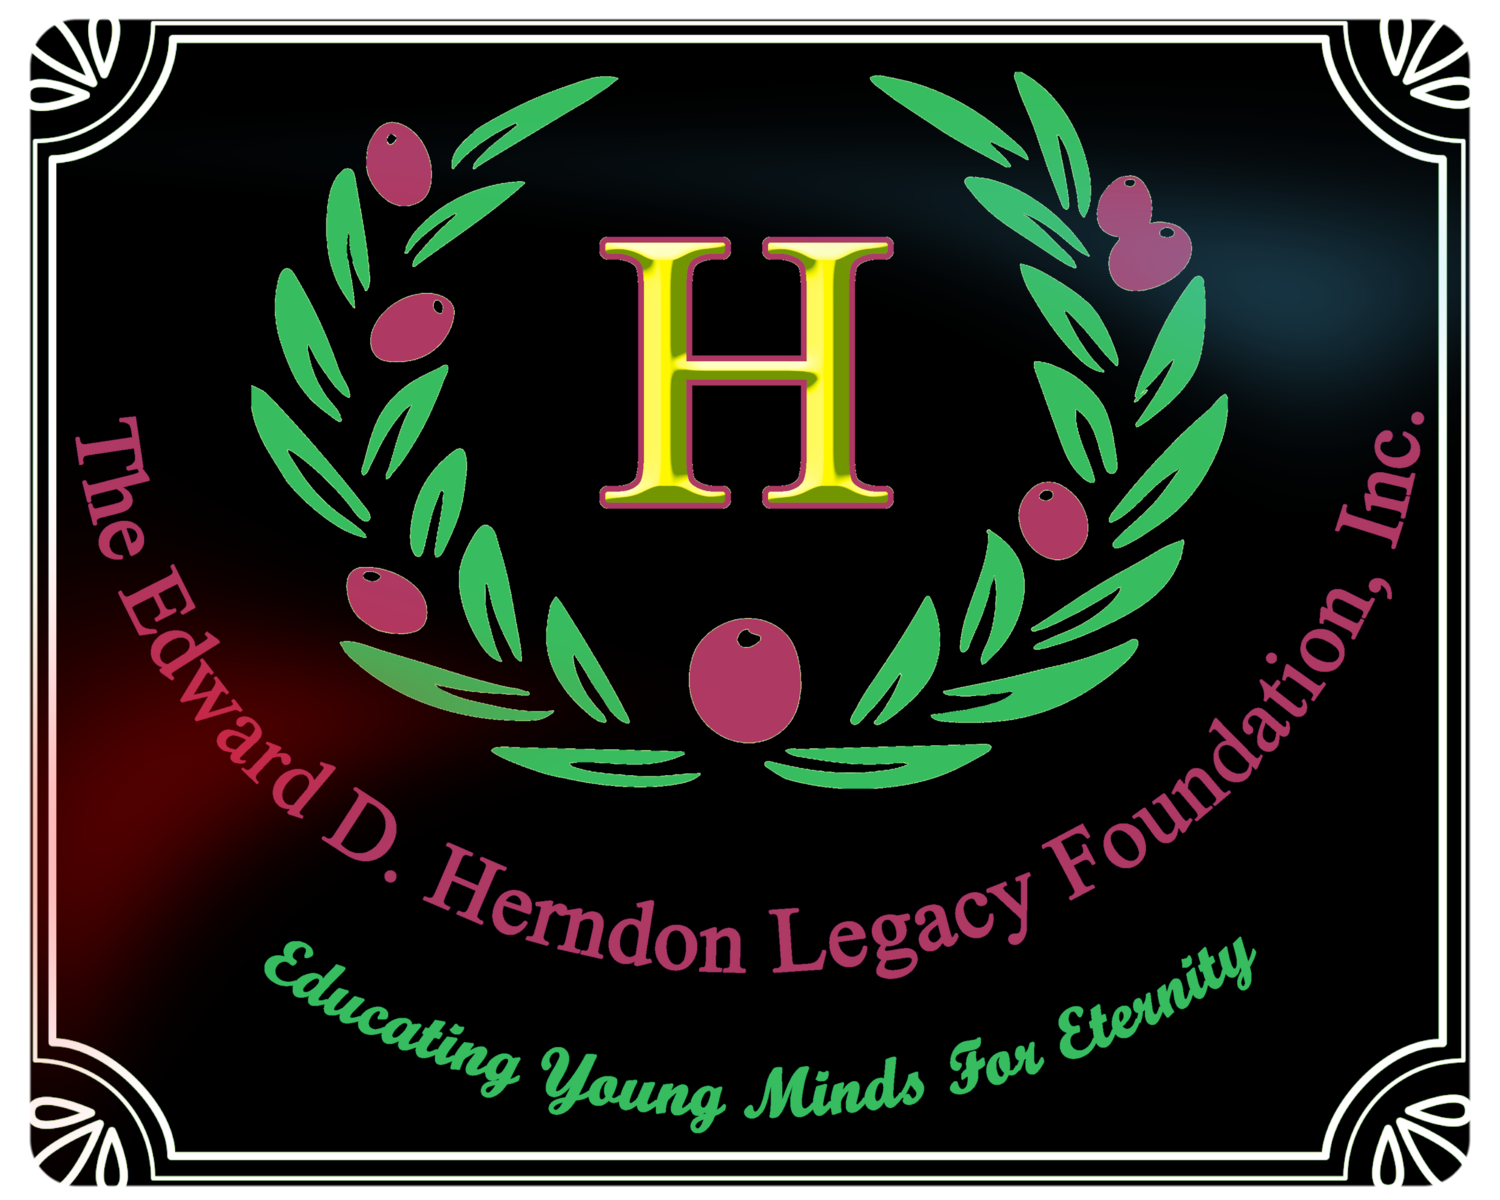 The Edward D. Herndon Legacy Foundation, Inc.